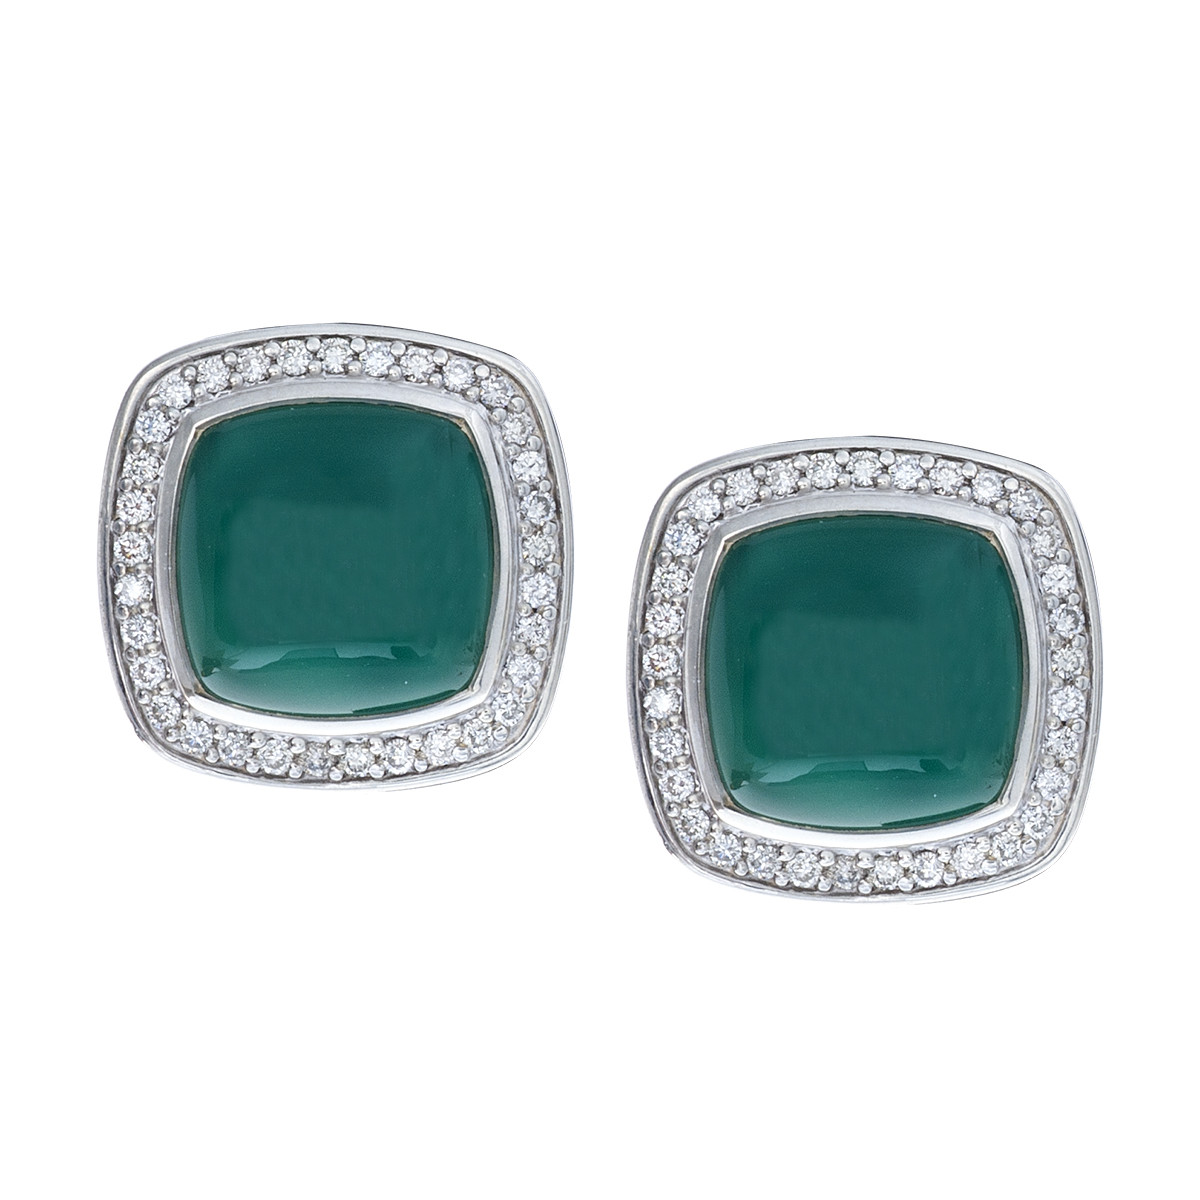 Vintage David Yurman Albion Green Onyx & Diamond Earrings